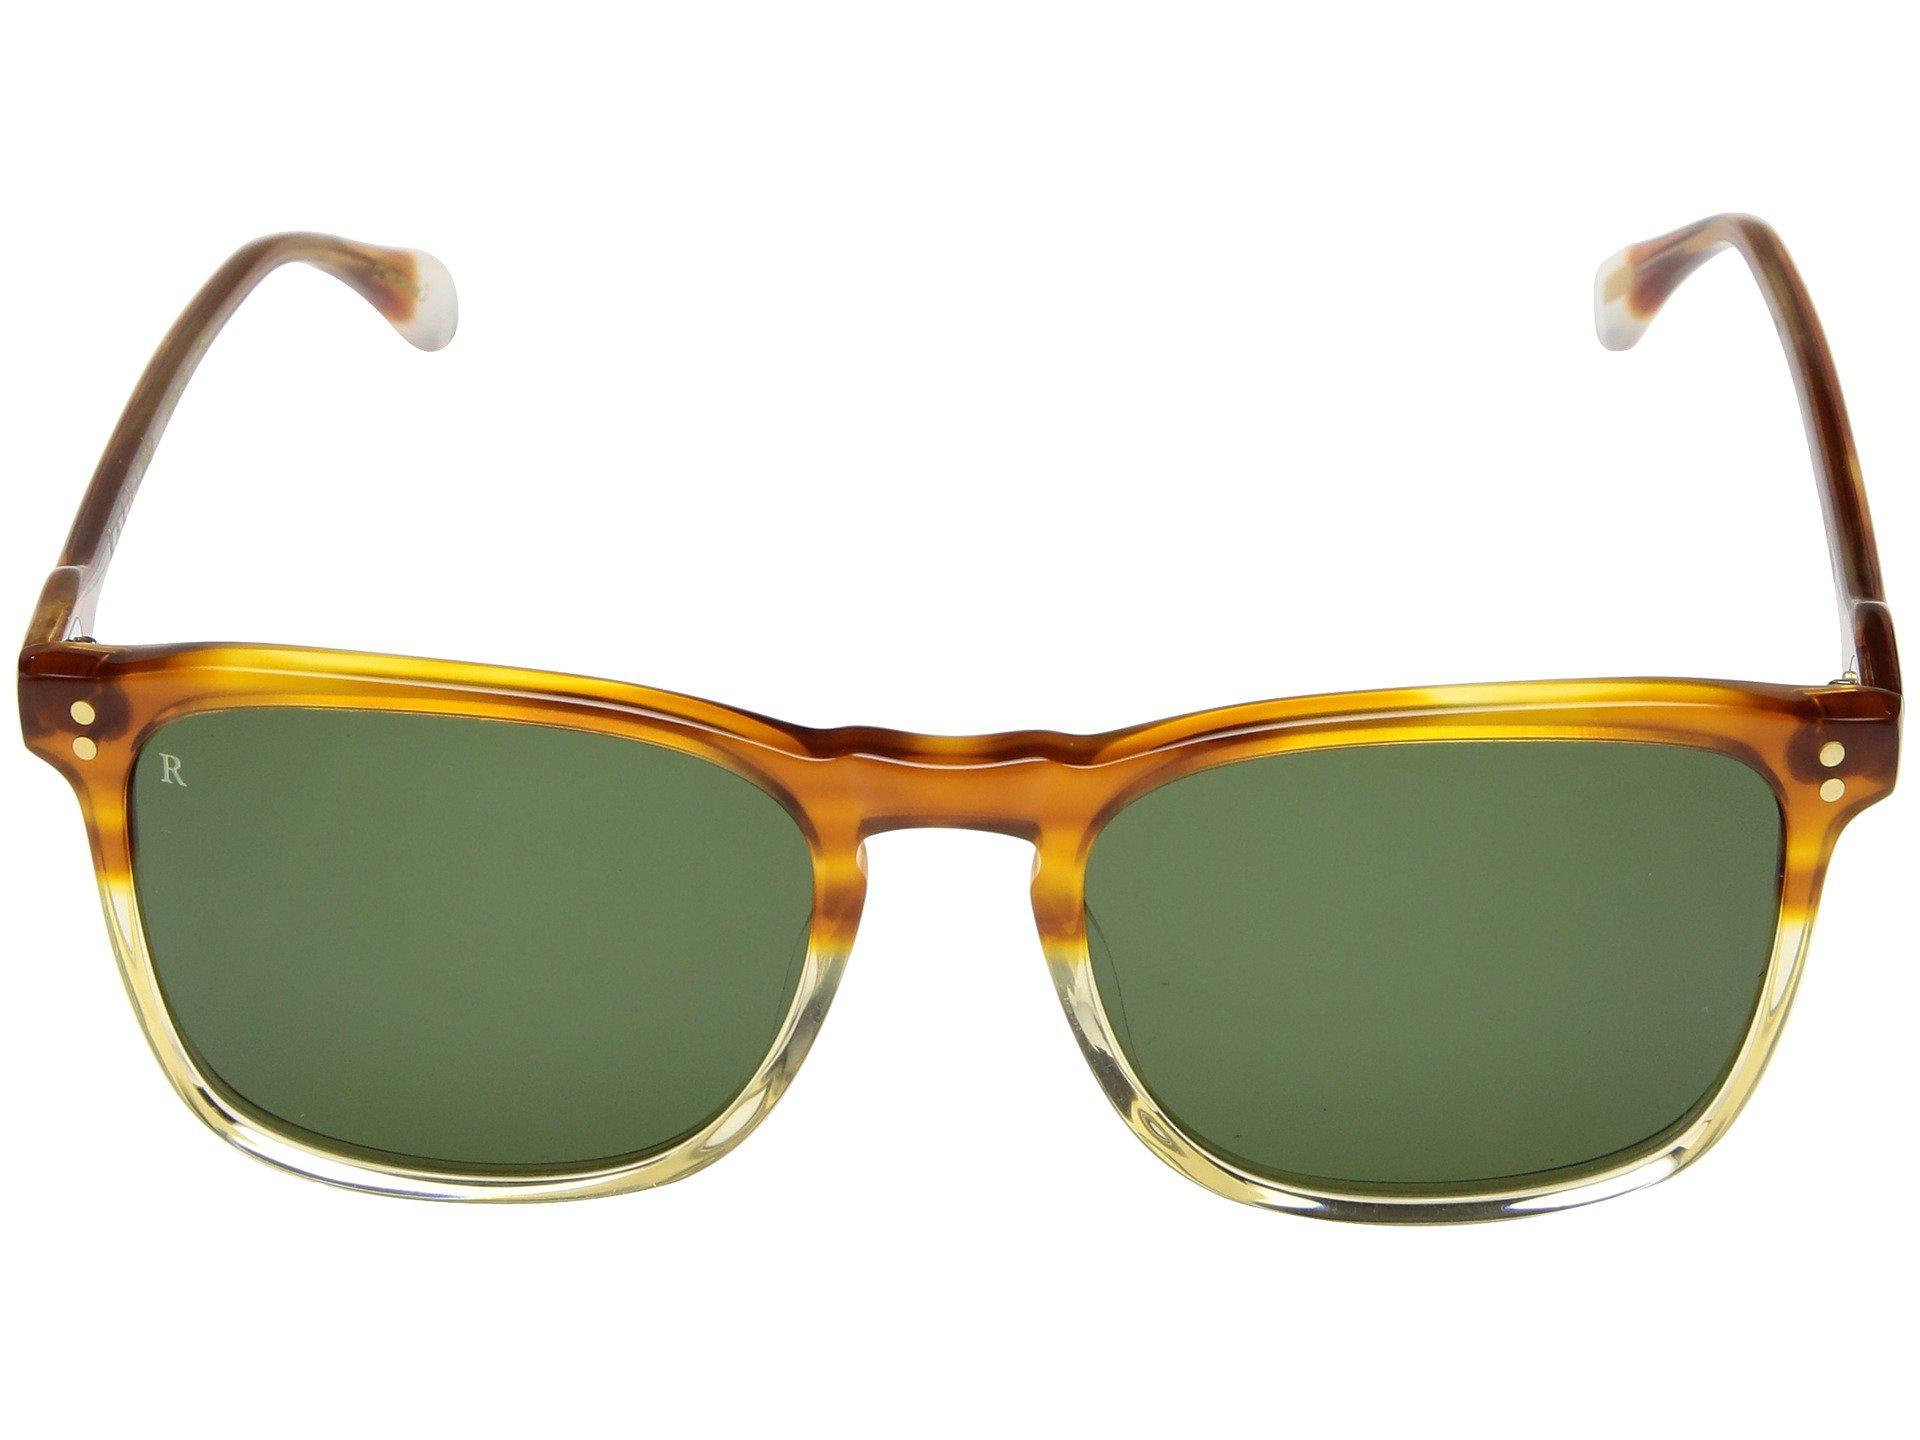 dfa19acb111 Raen - Green Wiley (tokyo Tortoise Bronze Polarized) Polarized Fashion  Sunglasses - Lyst. View fullscreen